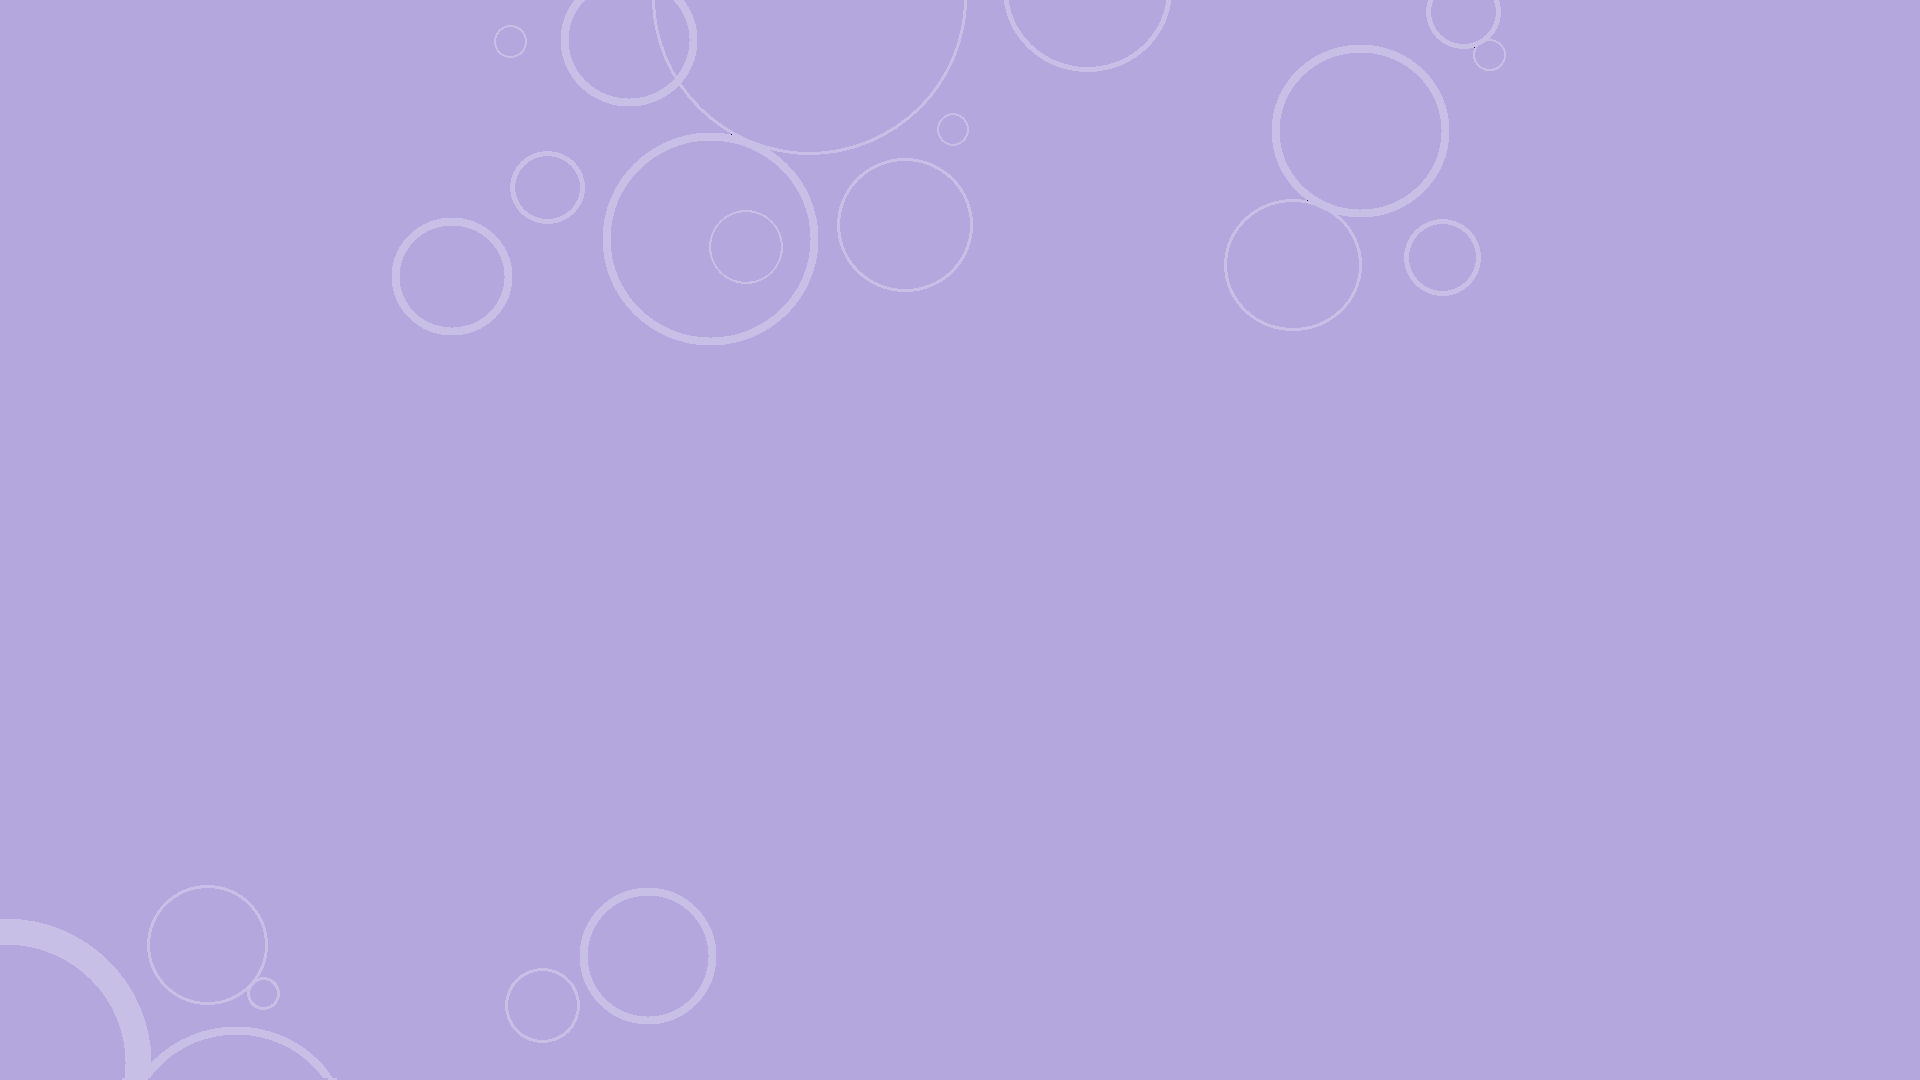 Lavender Backgrounds - Wallpaper Cave